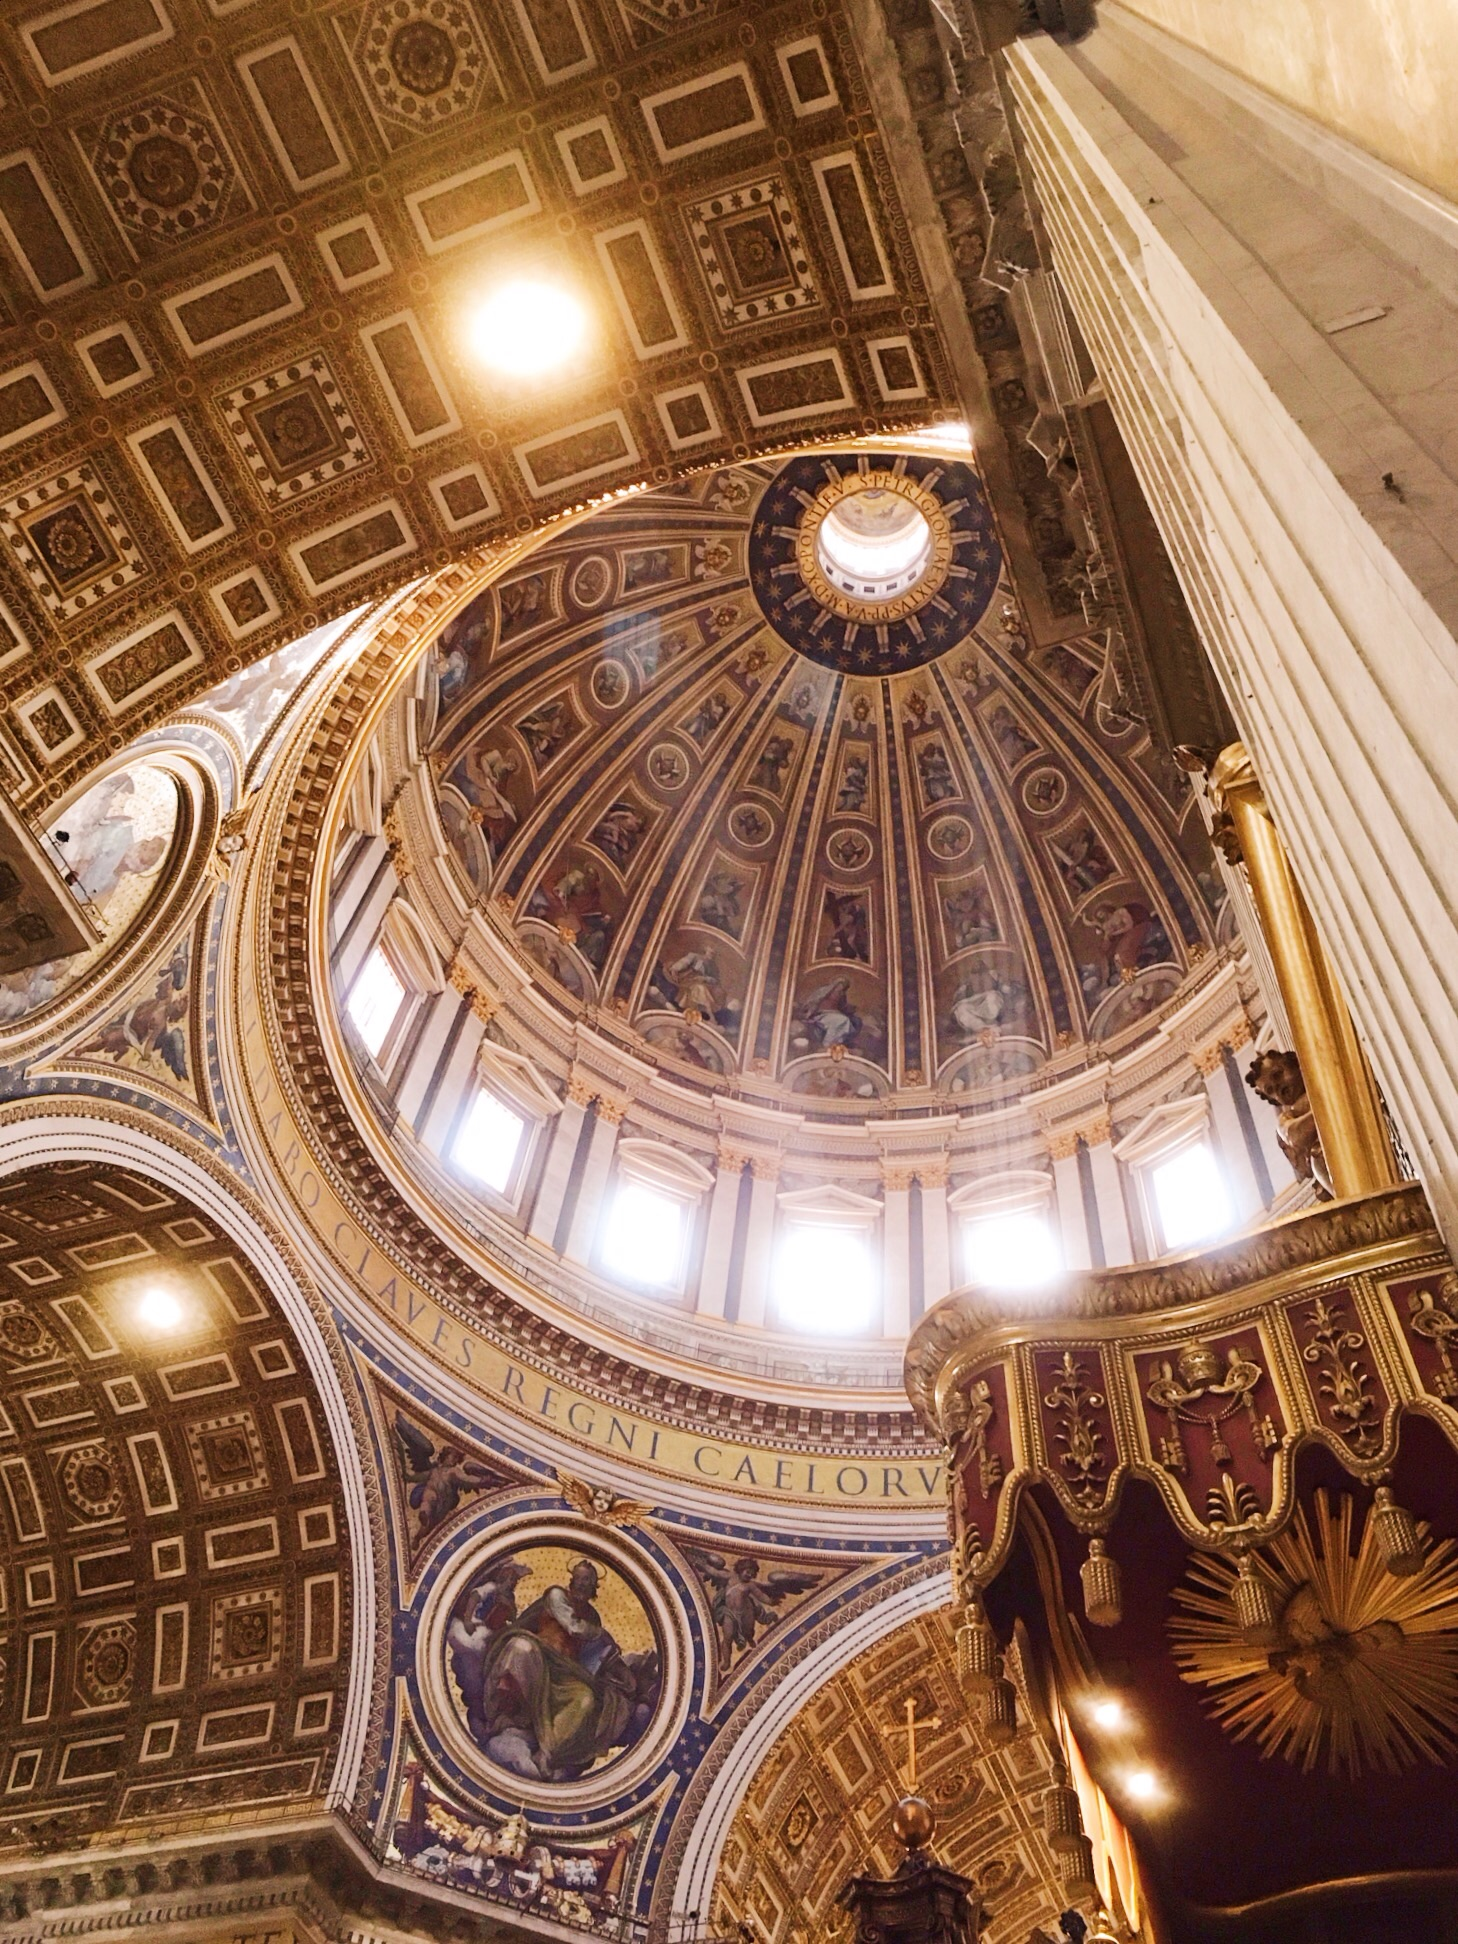 St. Peters ceiling